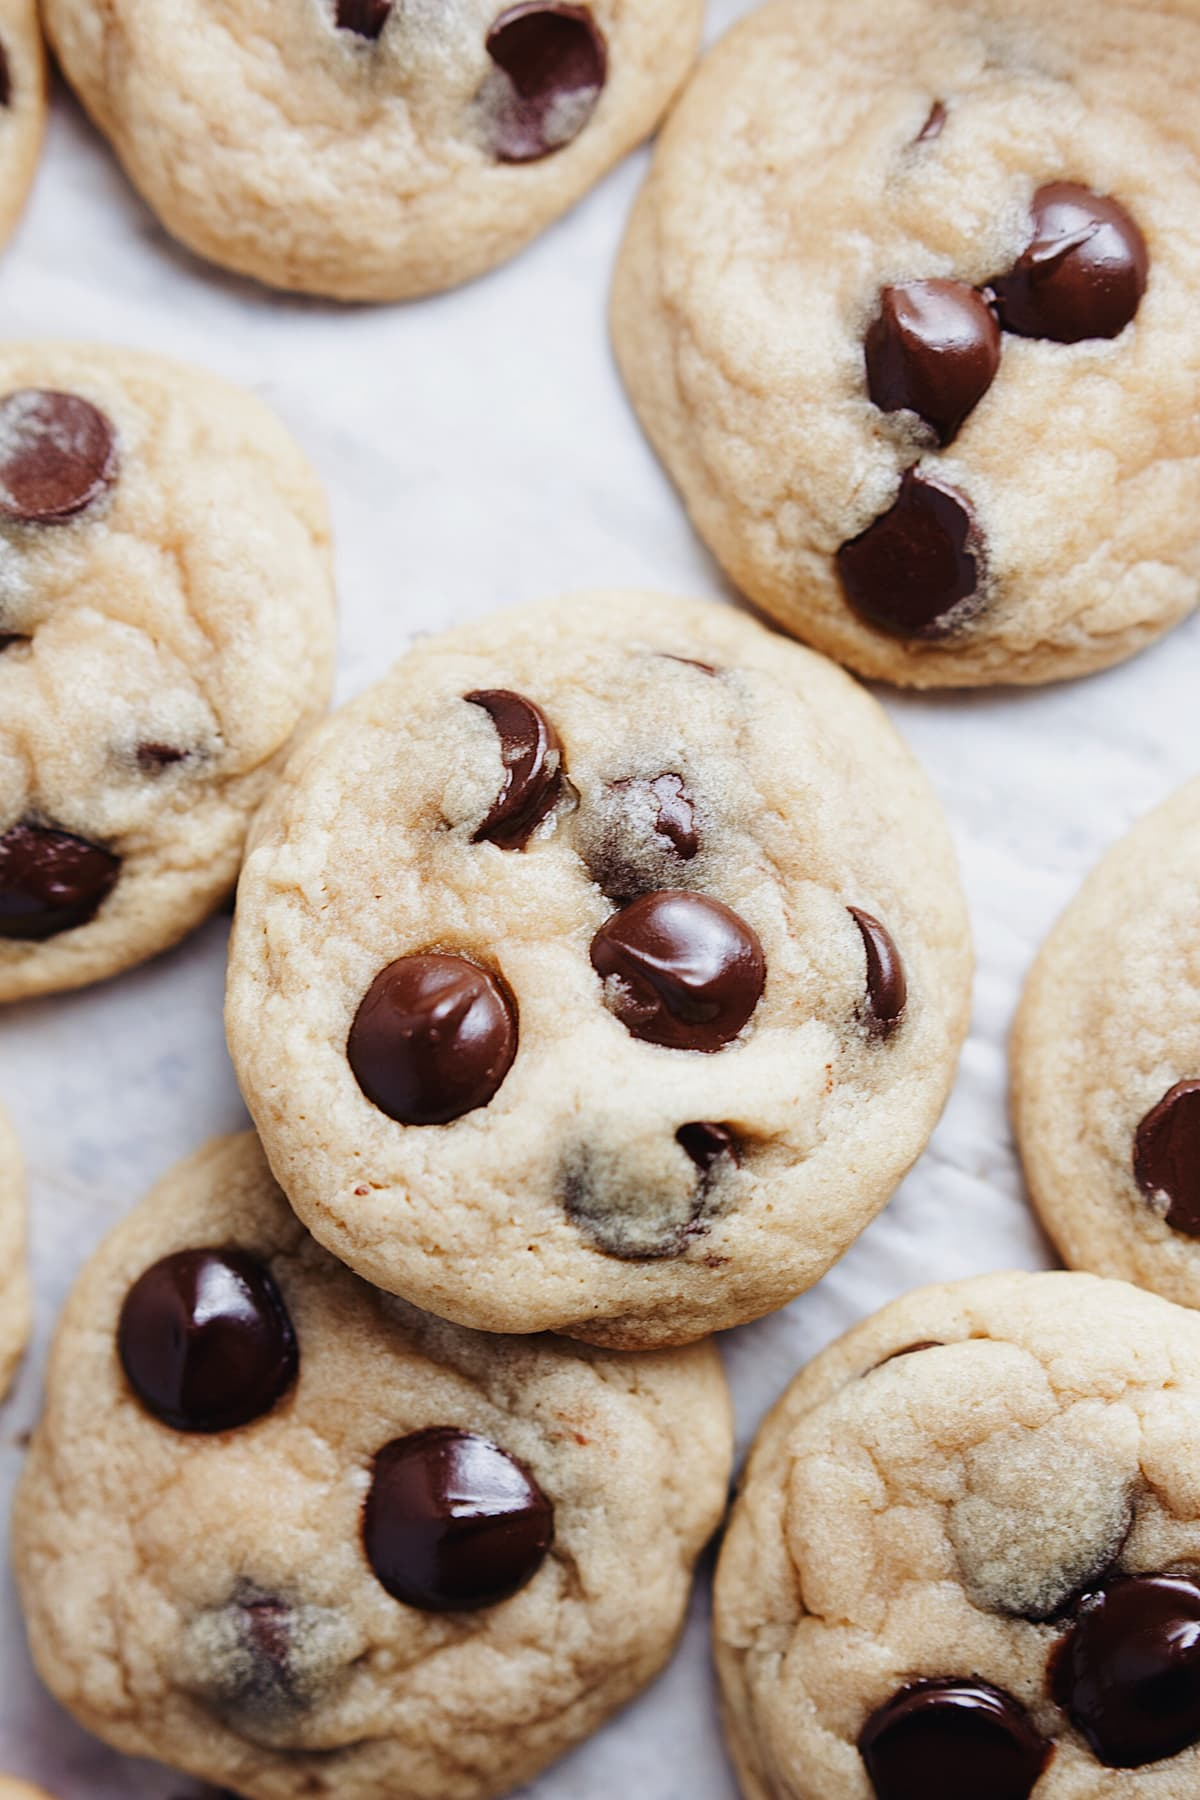 Chewy Ghirardelli chocolate chip cookies laid out on parchment paper.